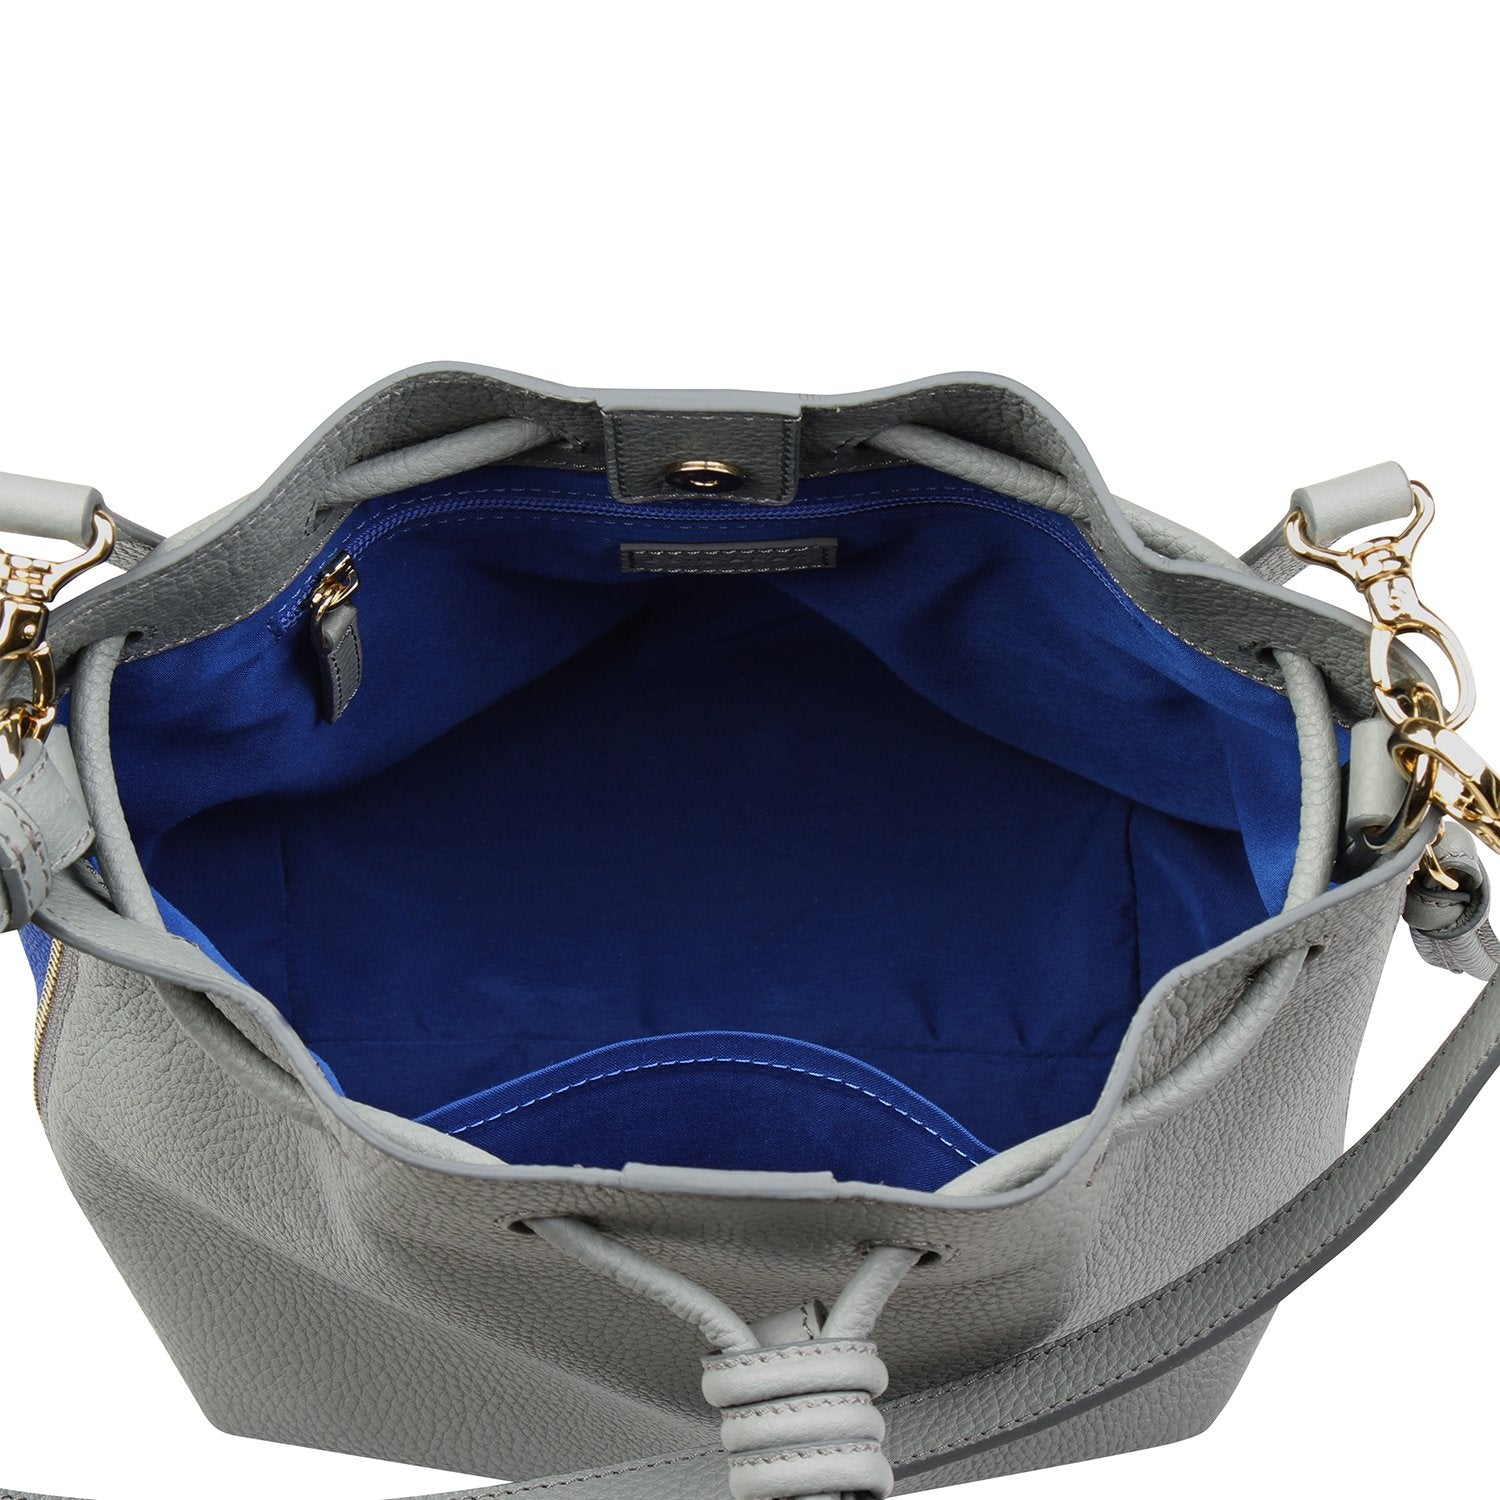 A convertible medium leather bucket crossbody bag in grey and blue, blue interior front image.